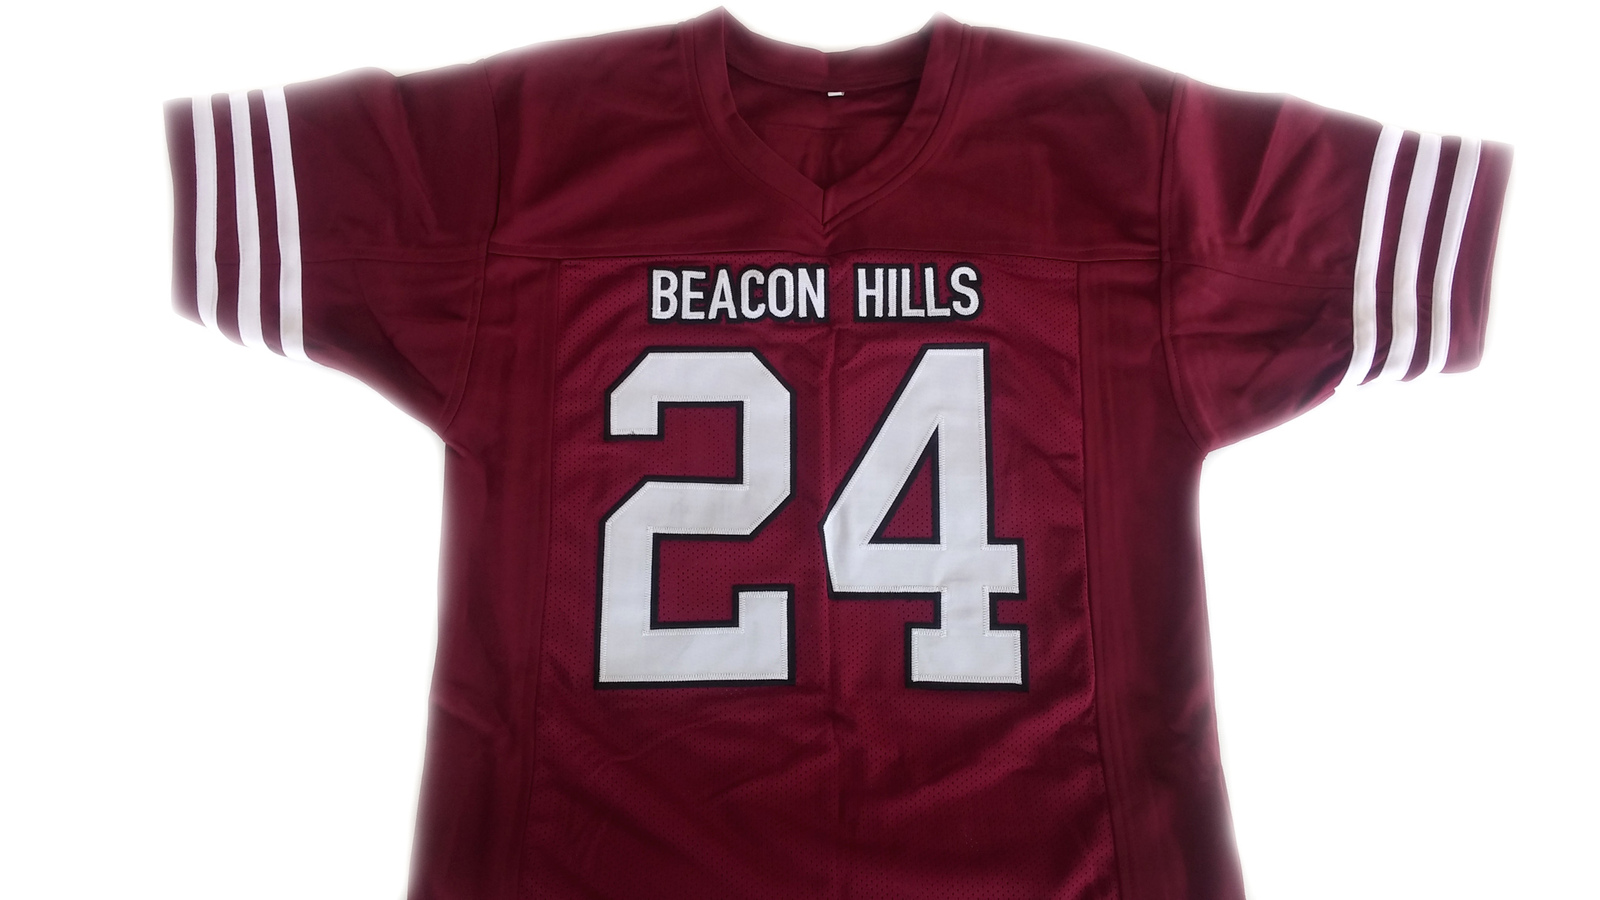 Stilinski #24 Beacon Hills Lacrosse Jersey Teen Wolf TV Serie Maroon Any Size